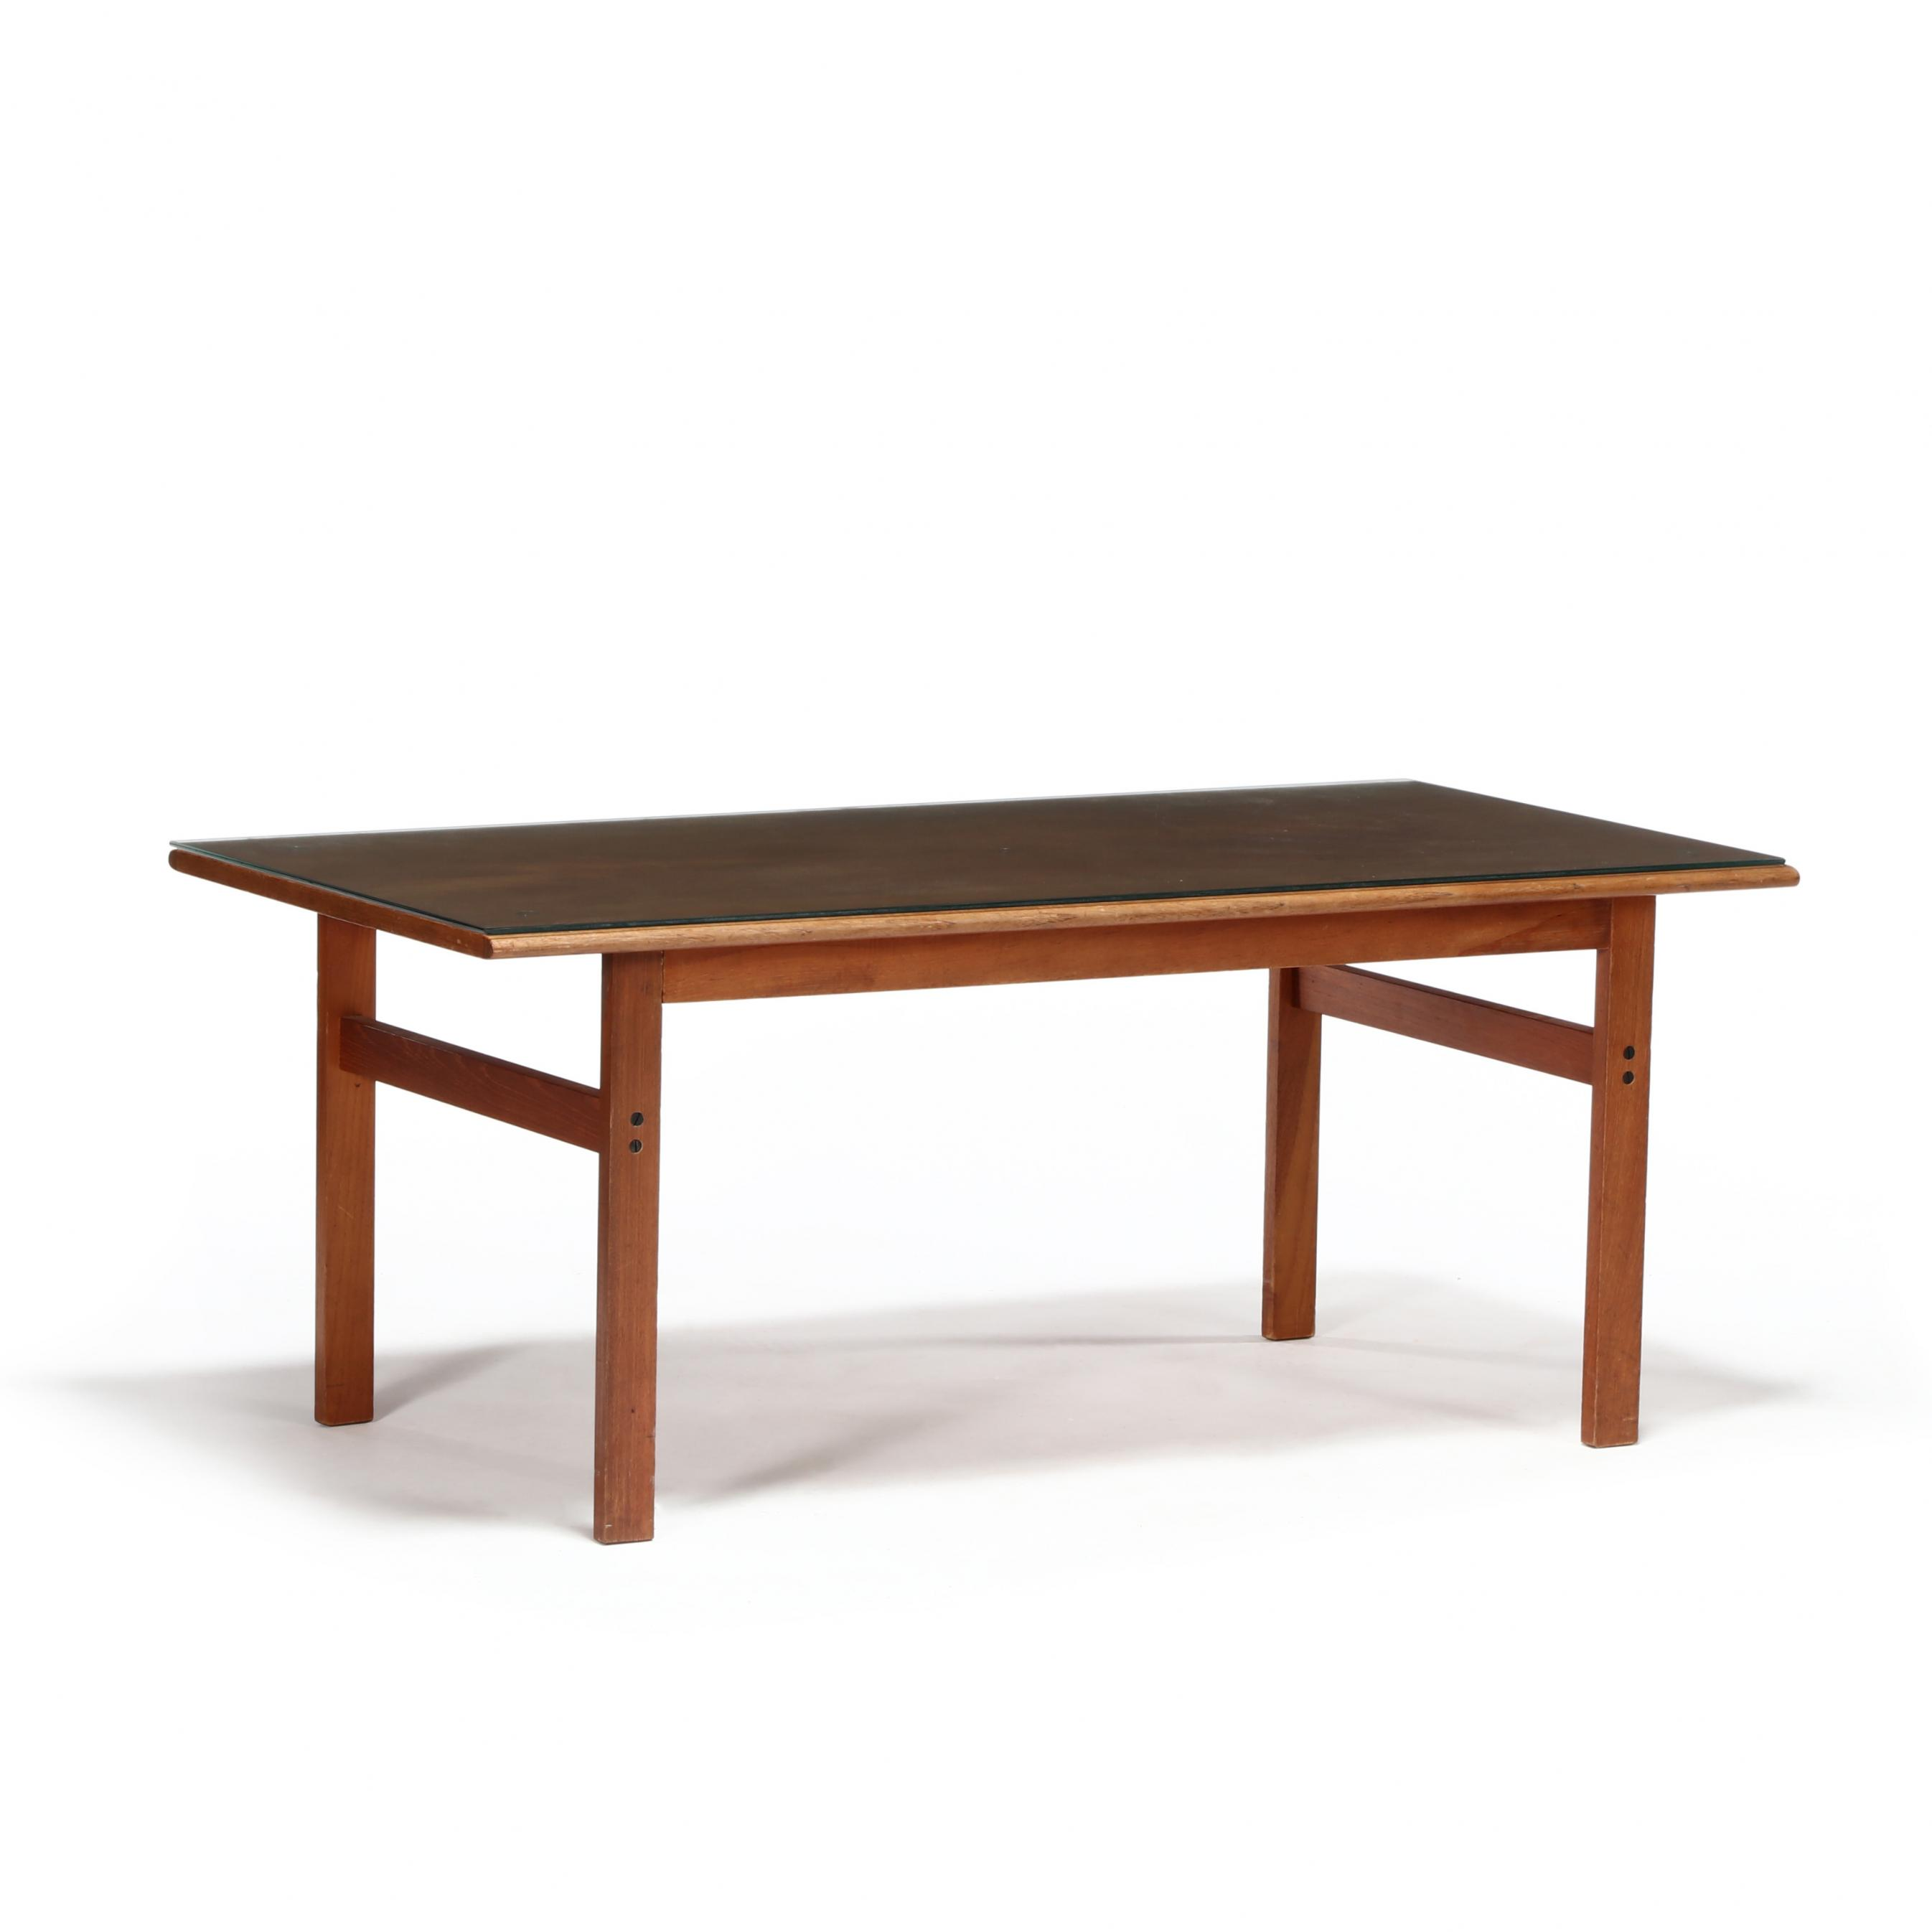 illum-wikkelso-denmark-1919-1999-teak-coffee-table